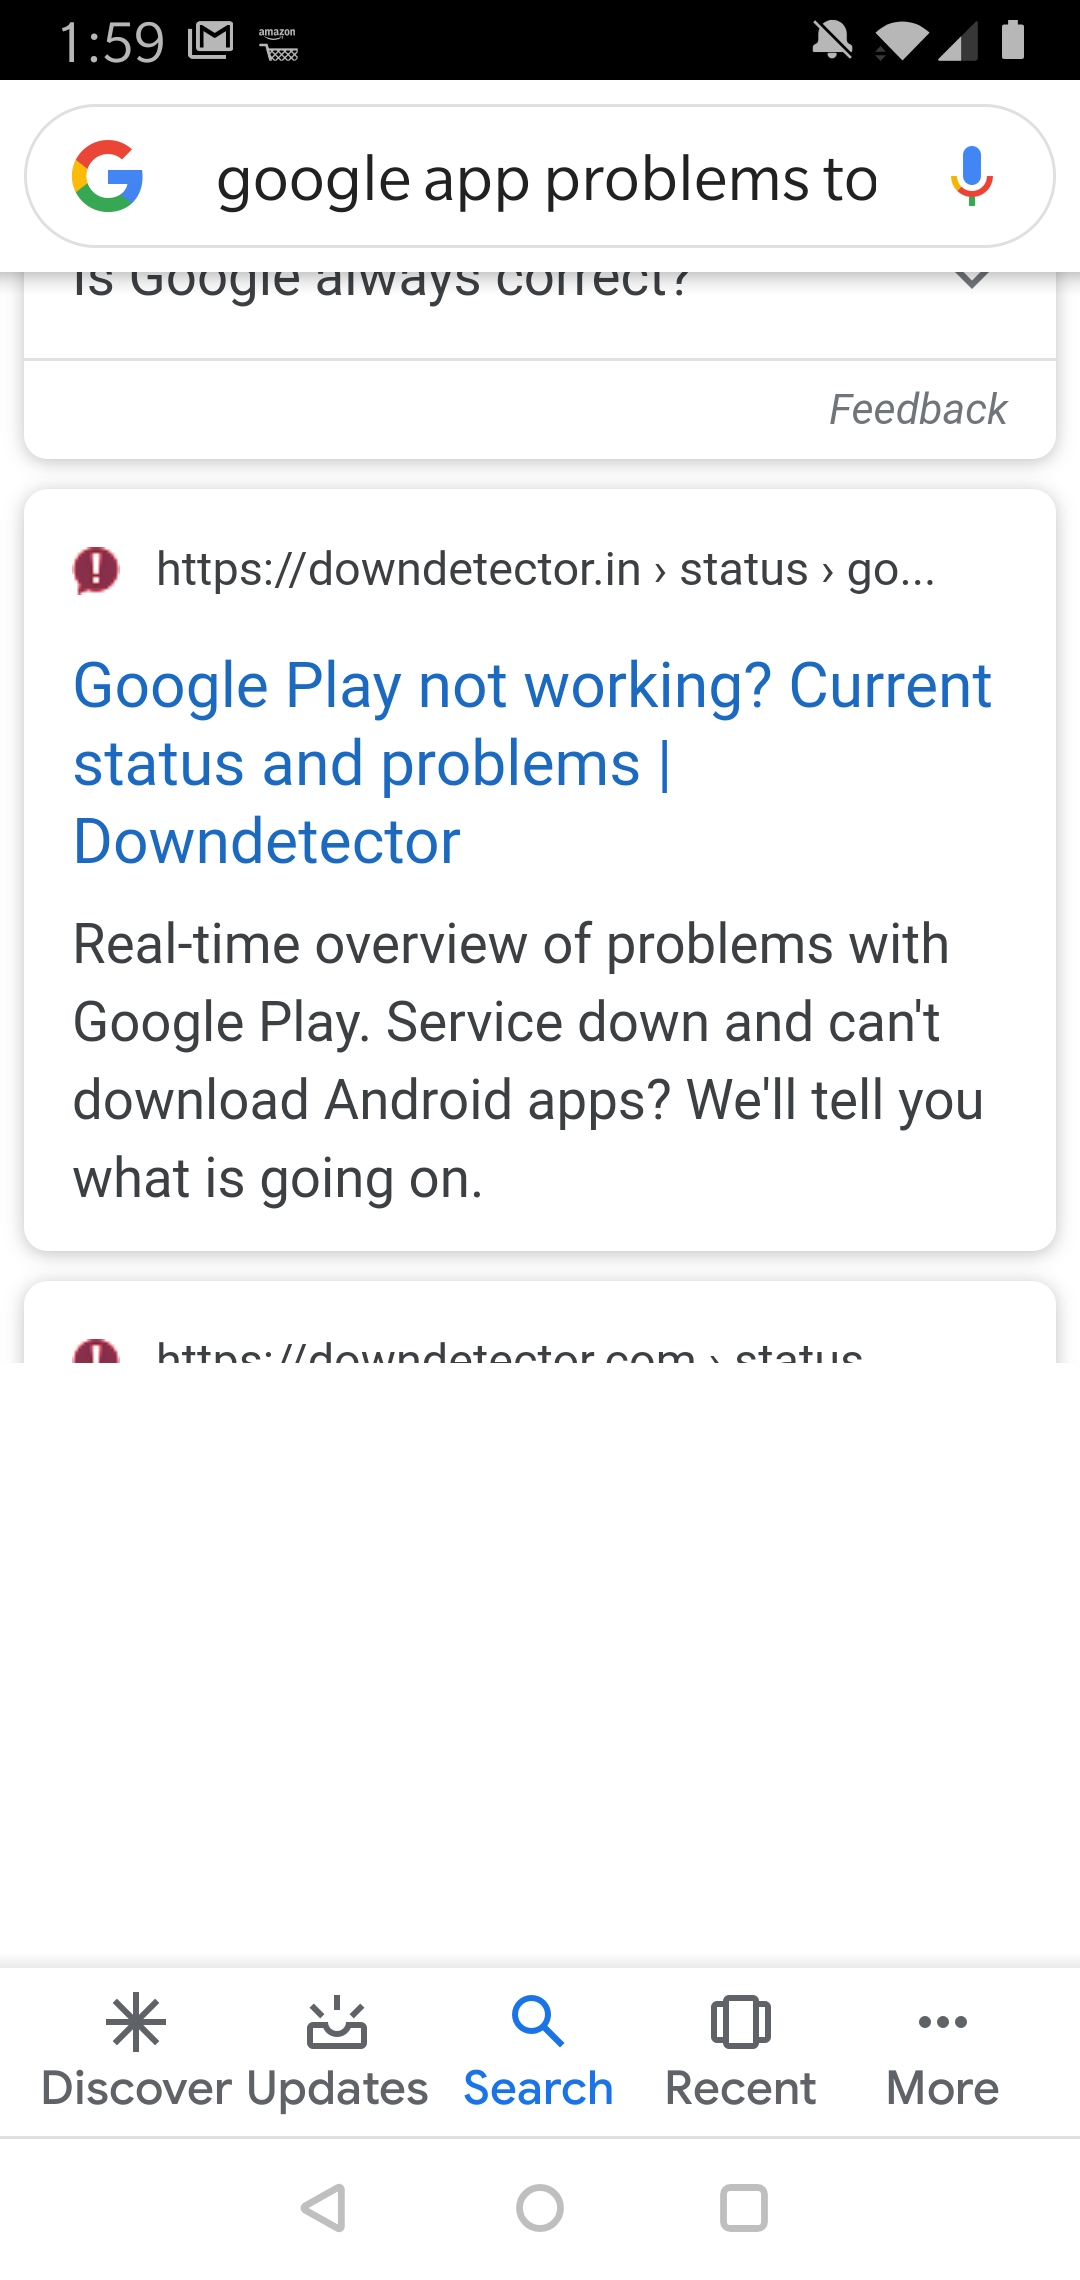 Google app search, results are partially displayed but on